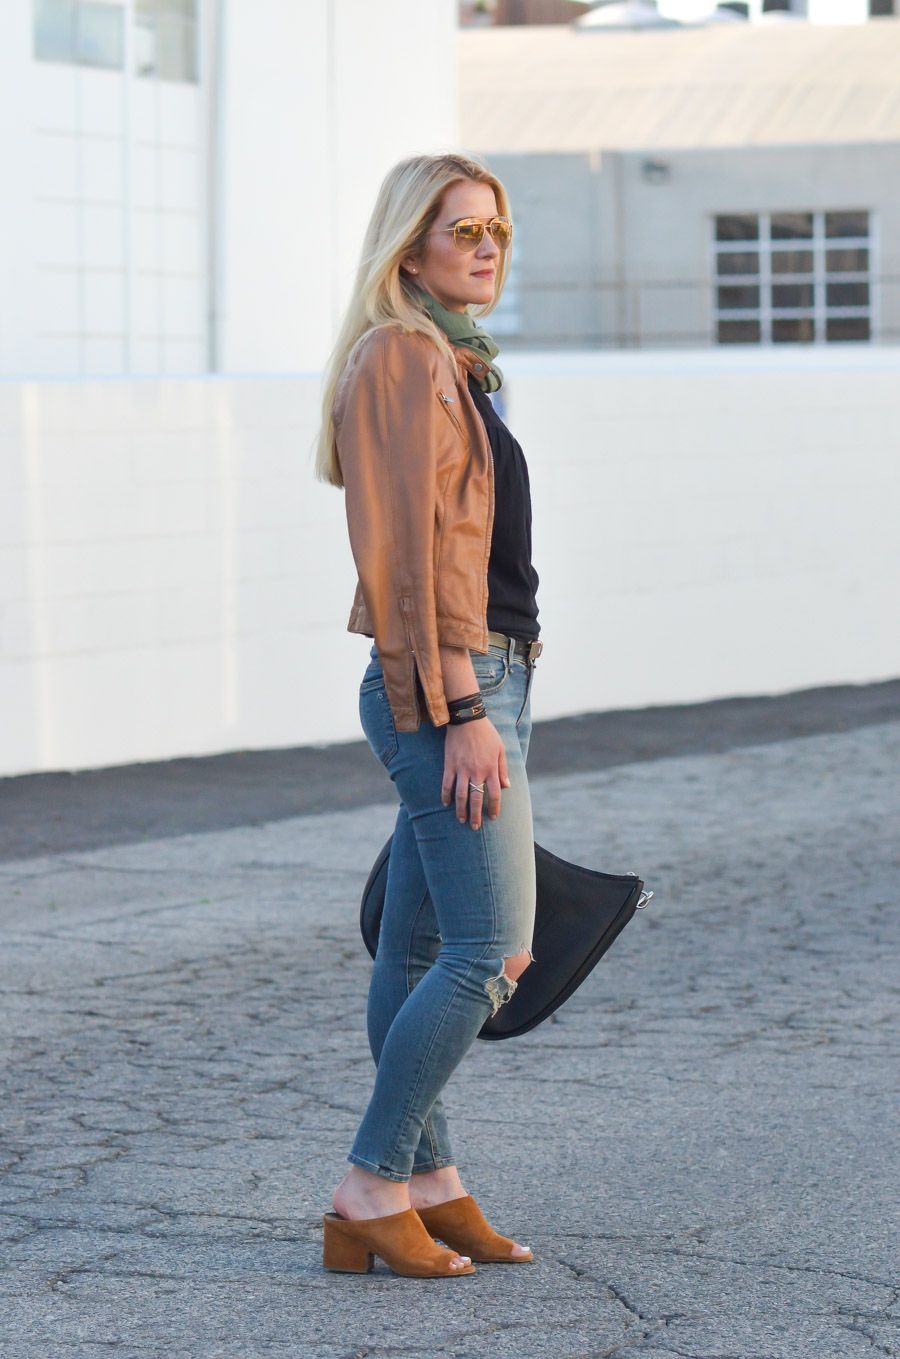 Ripped Skinny Jeans Leather Jacket Outfit Luci S Morsels